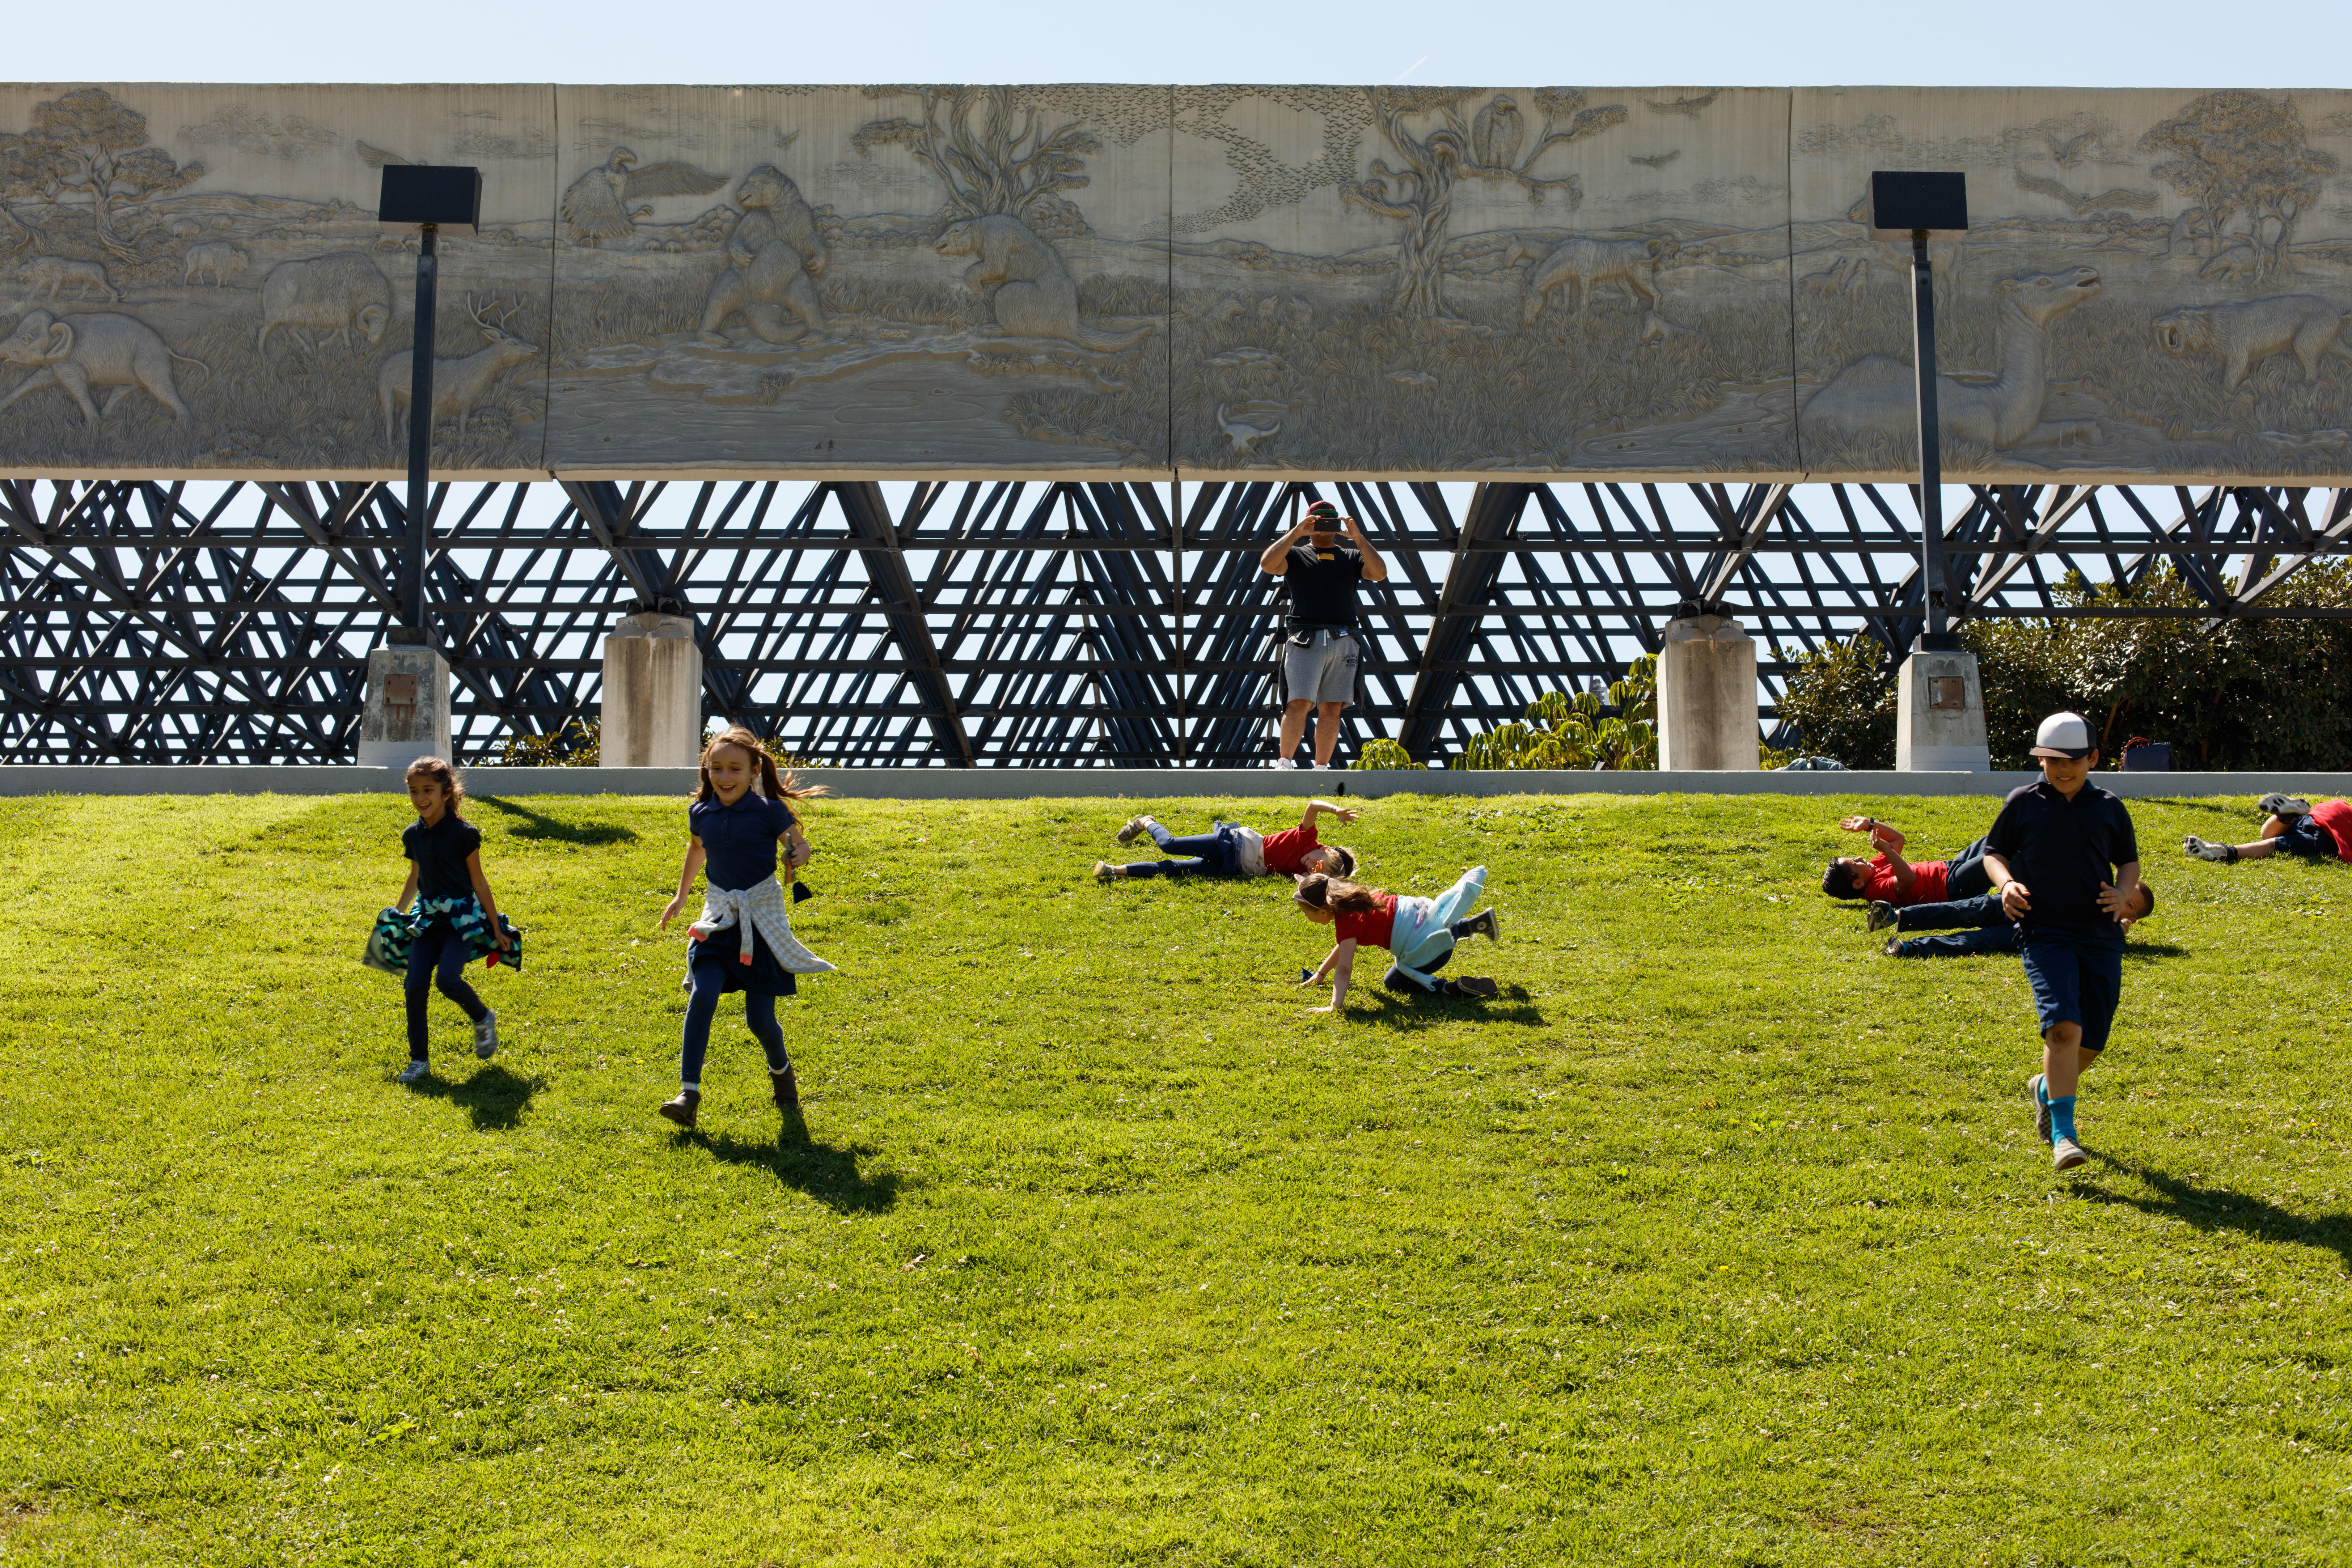 Kids rolling down hill at La Brea Tar Pits